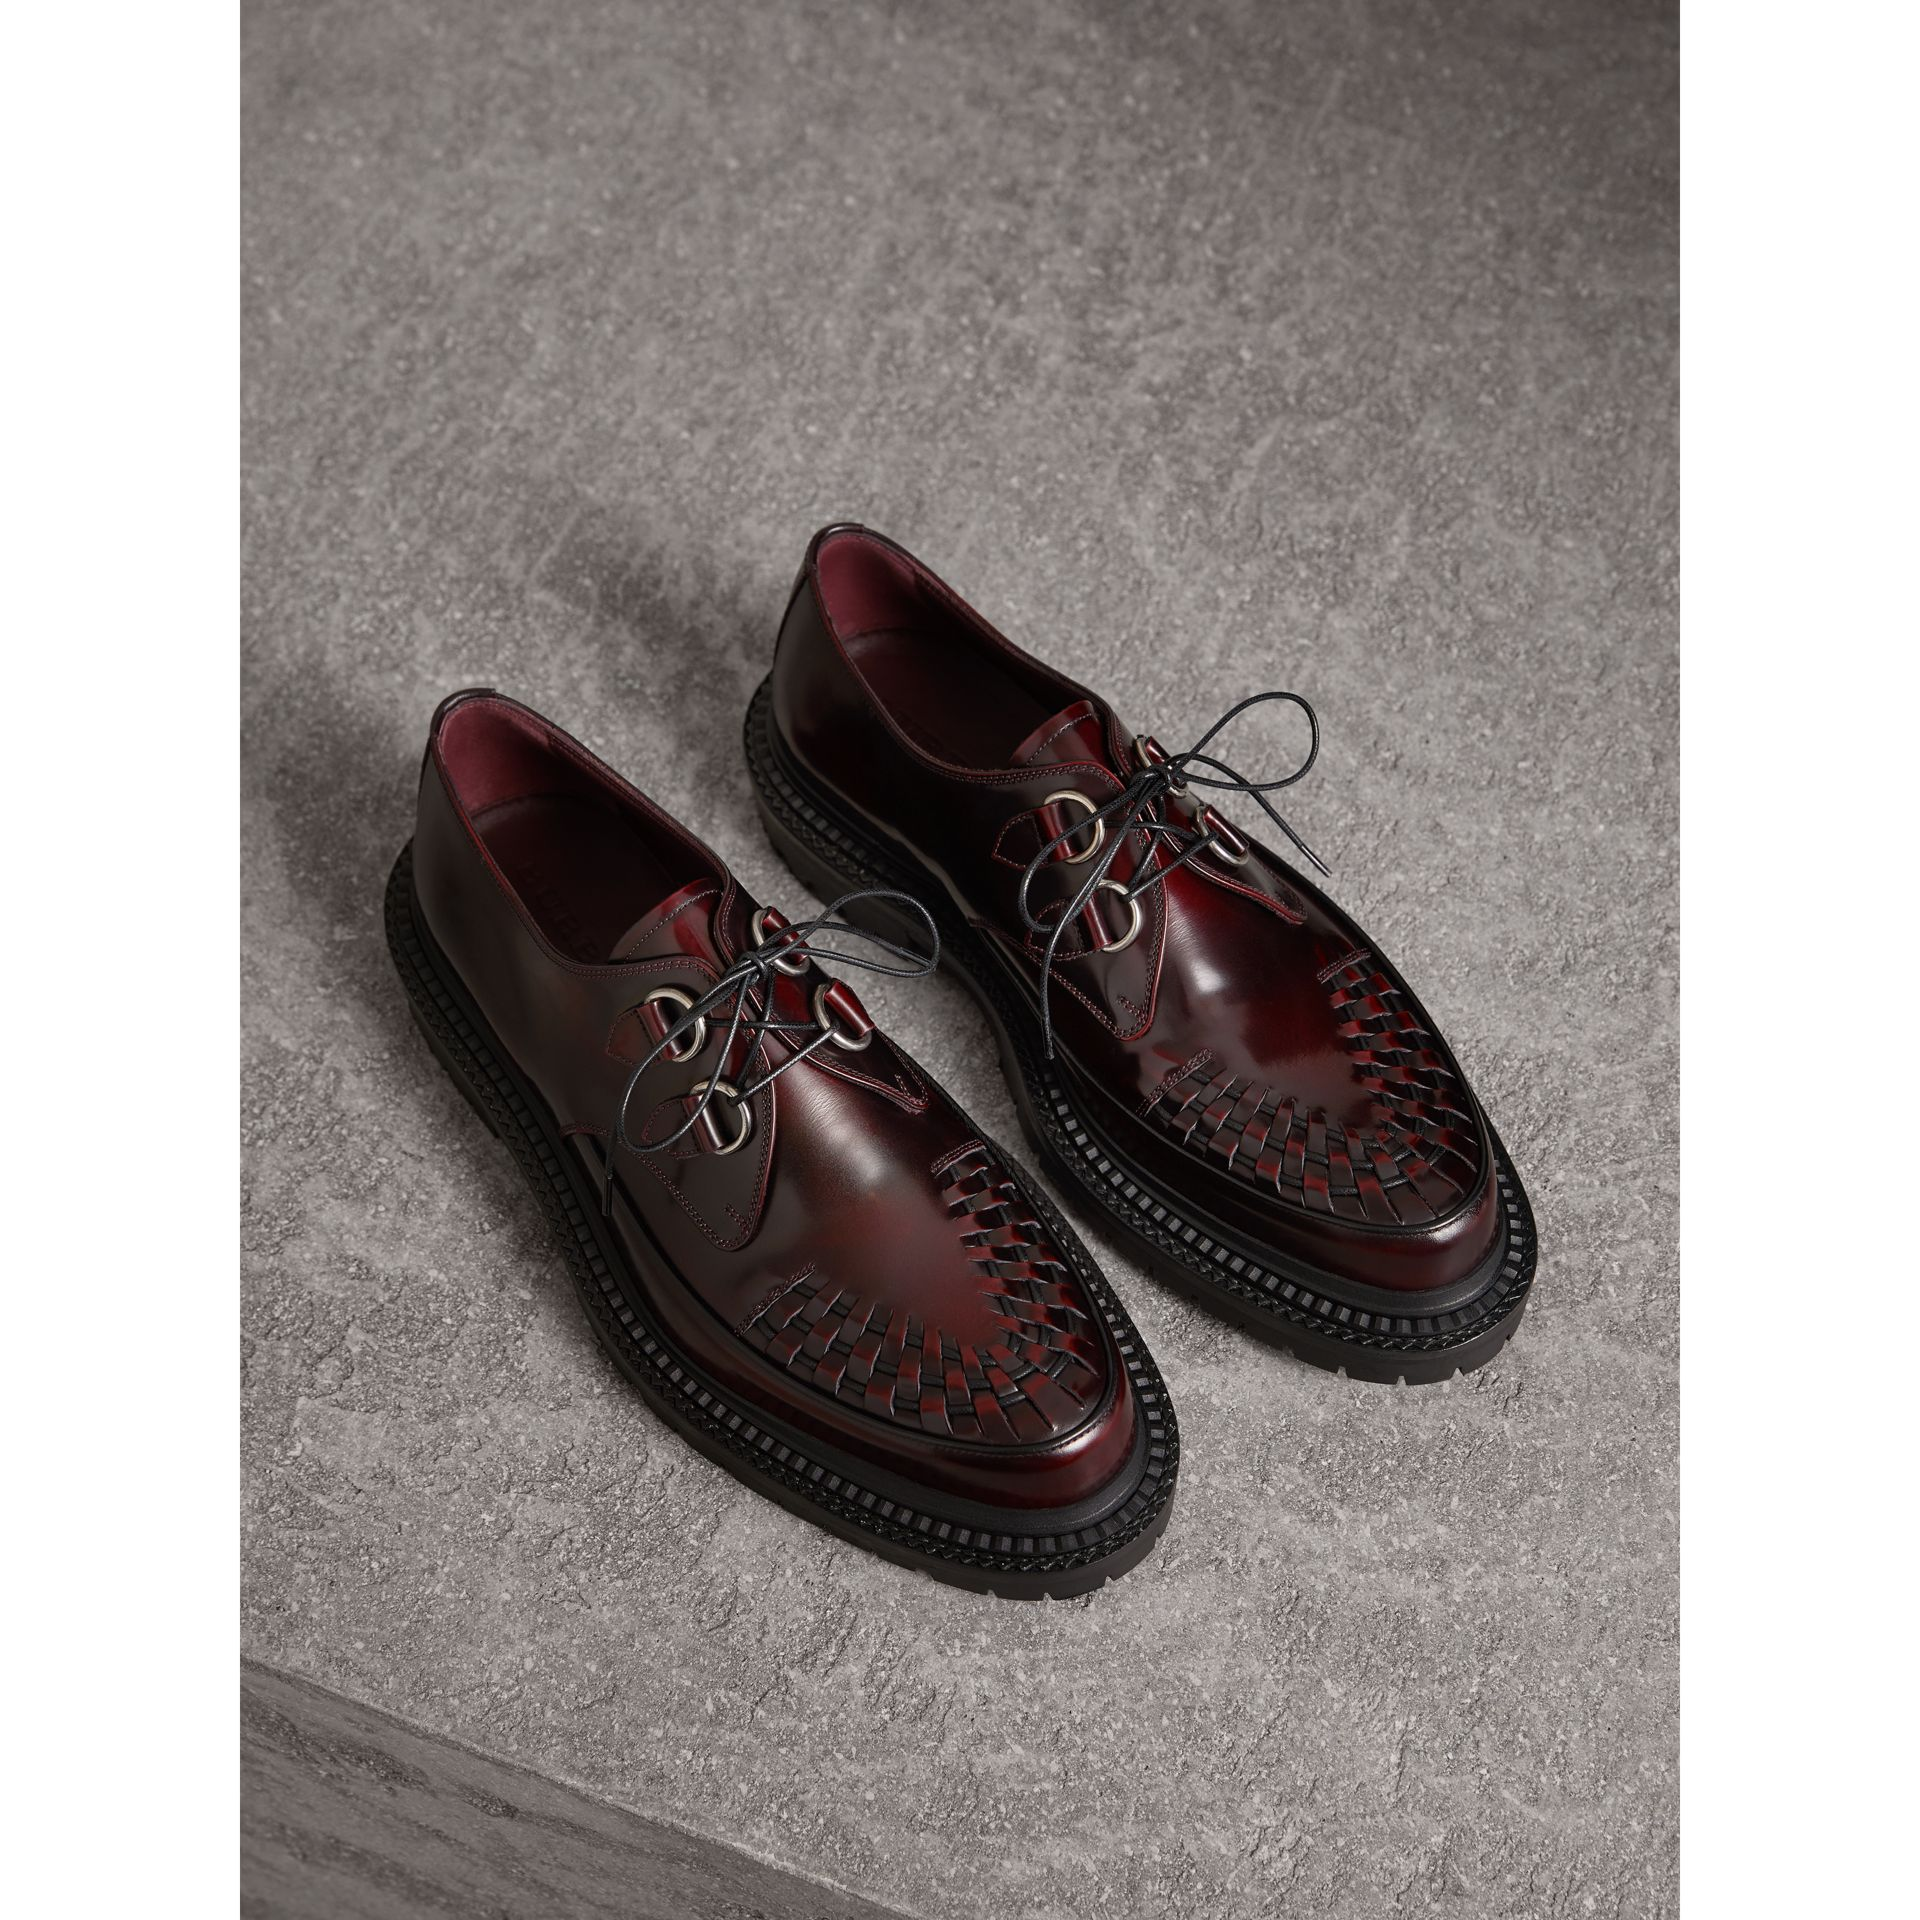 Burberry Woven-Toe Leather Lace-Up Shoes In Bordeaux   ModeSens 4b9c111c6a08